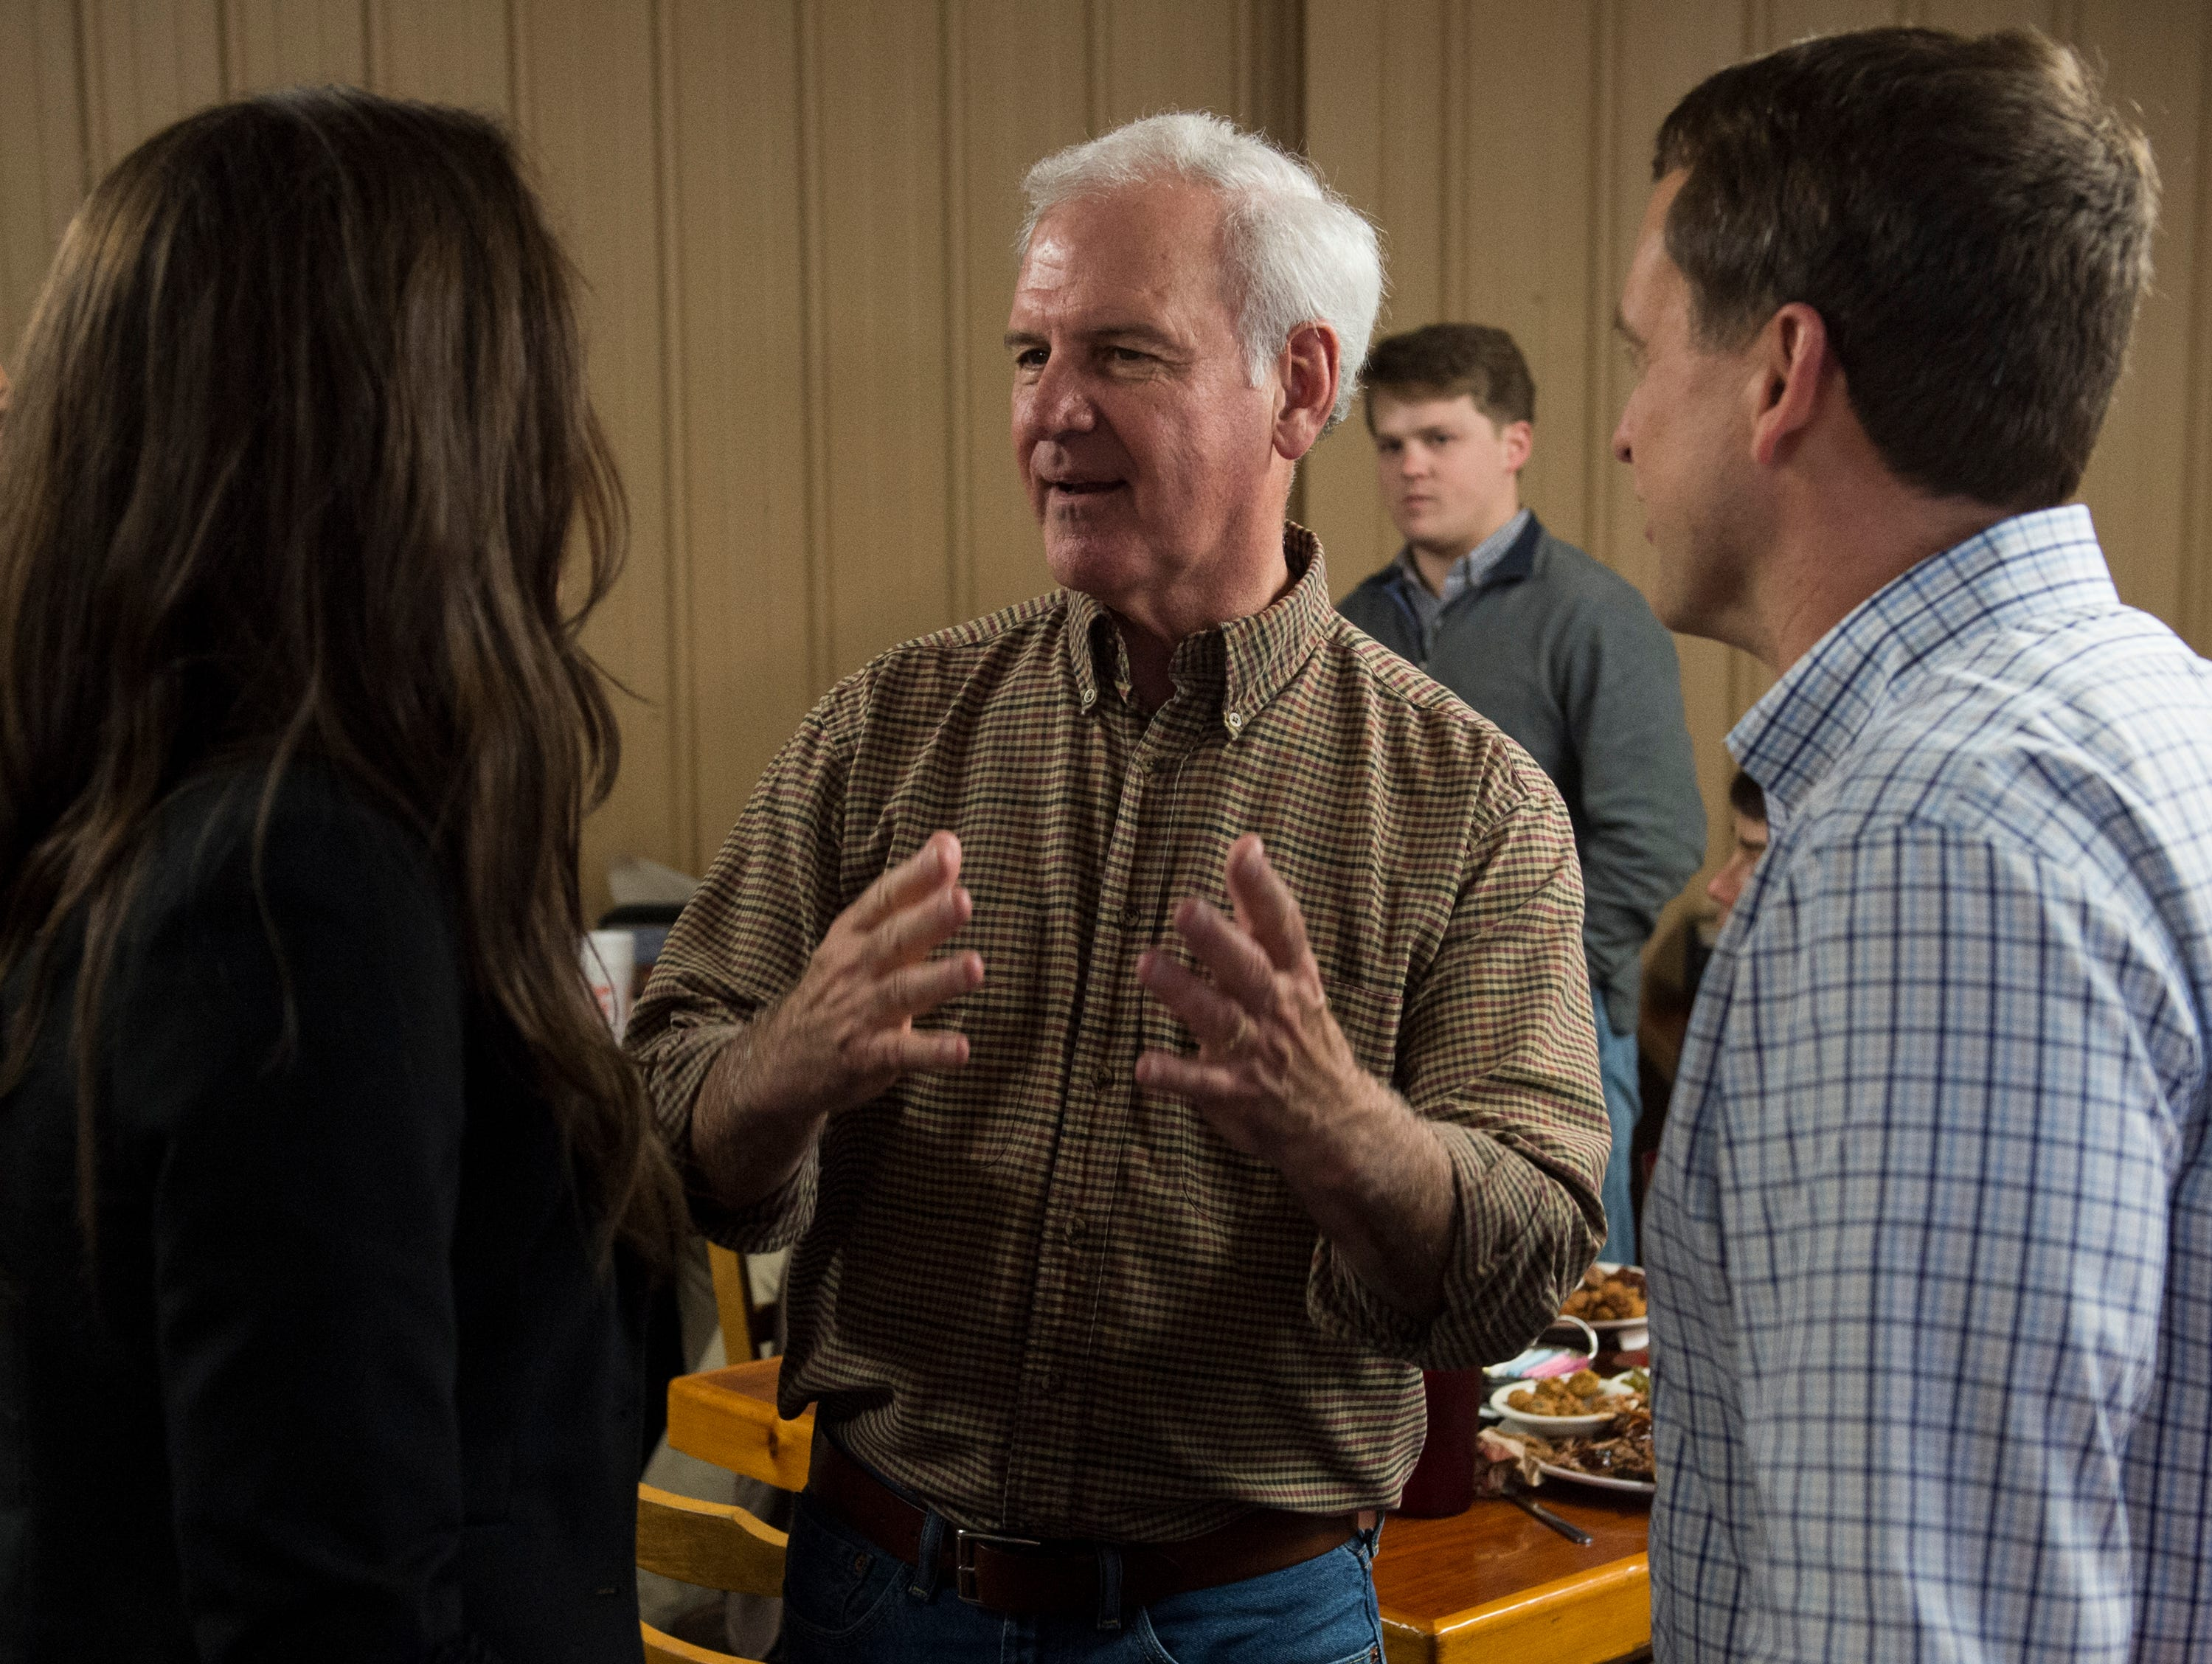 U.S. Rep. Bradley Byrne talks with supporters at Yellowhammer Cafe in Montgomery, Ala., on Thursday, Feb. 21, 2019.